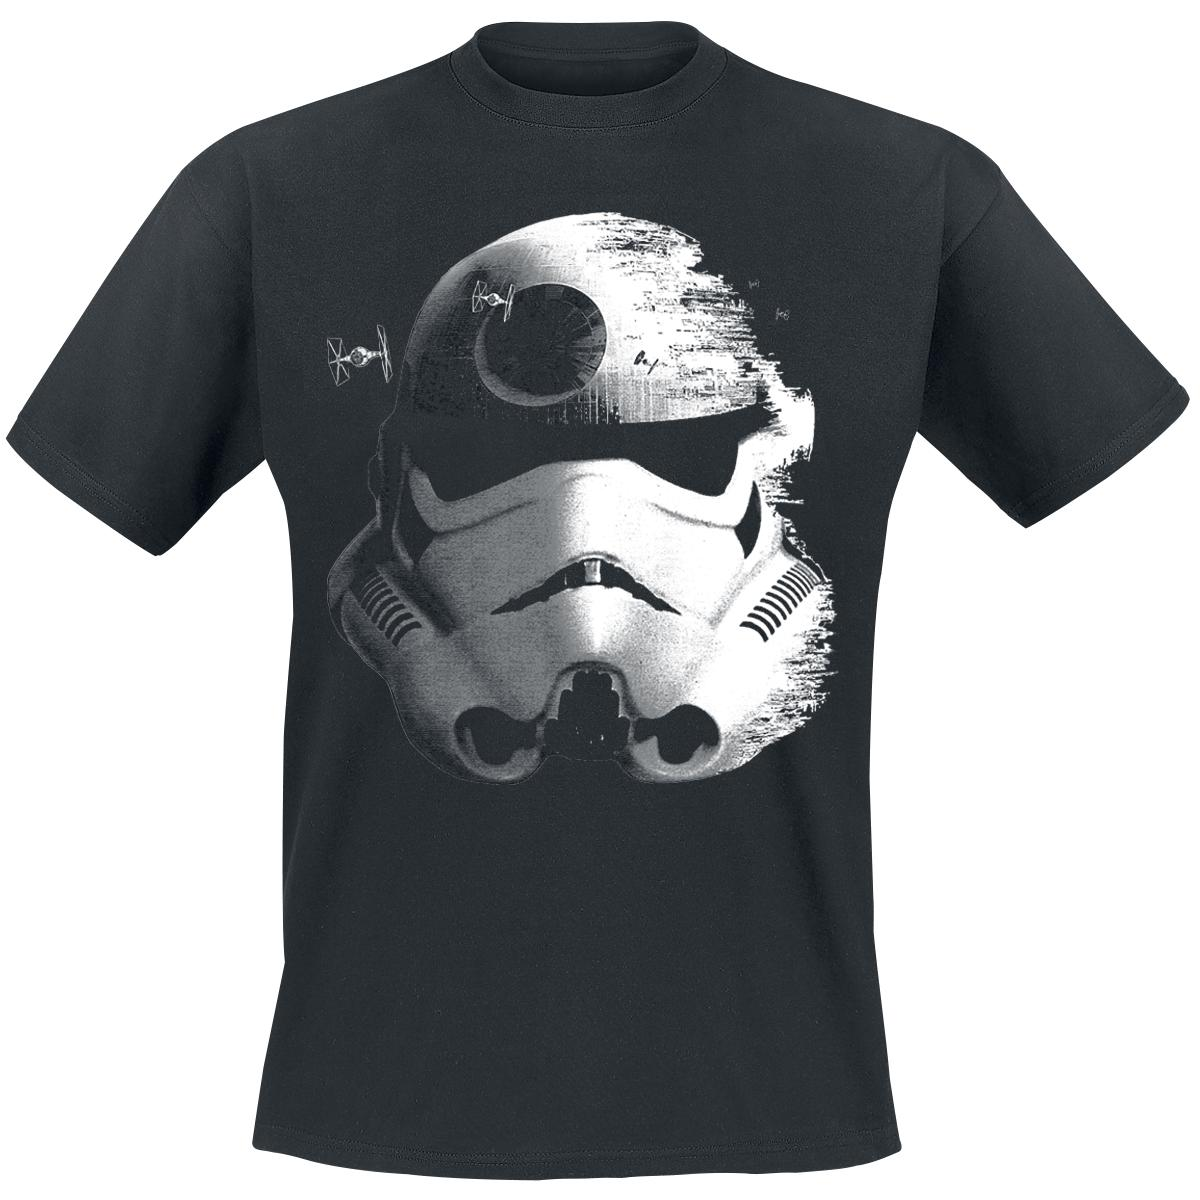 Stormtrooper Deathstar T Shirt Design Fancy